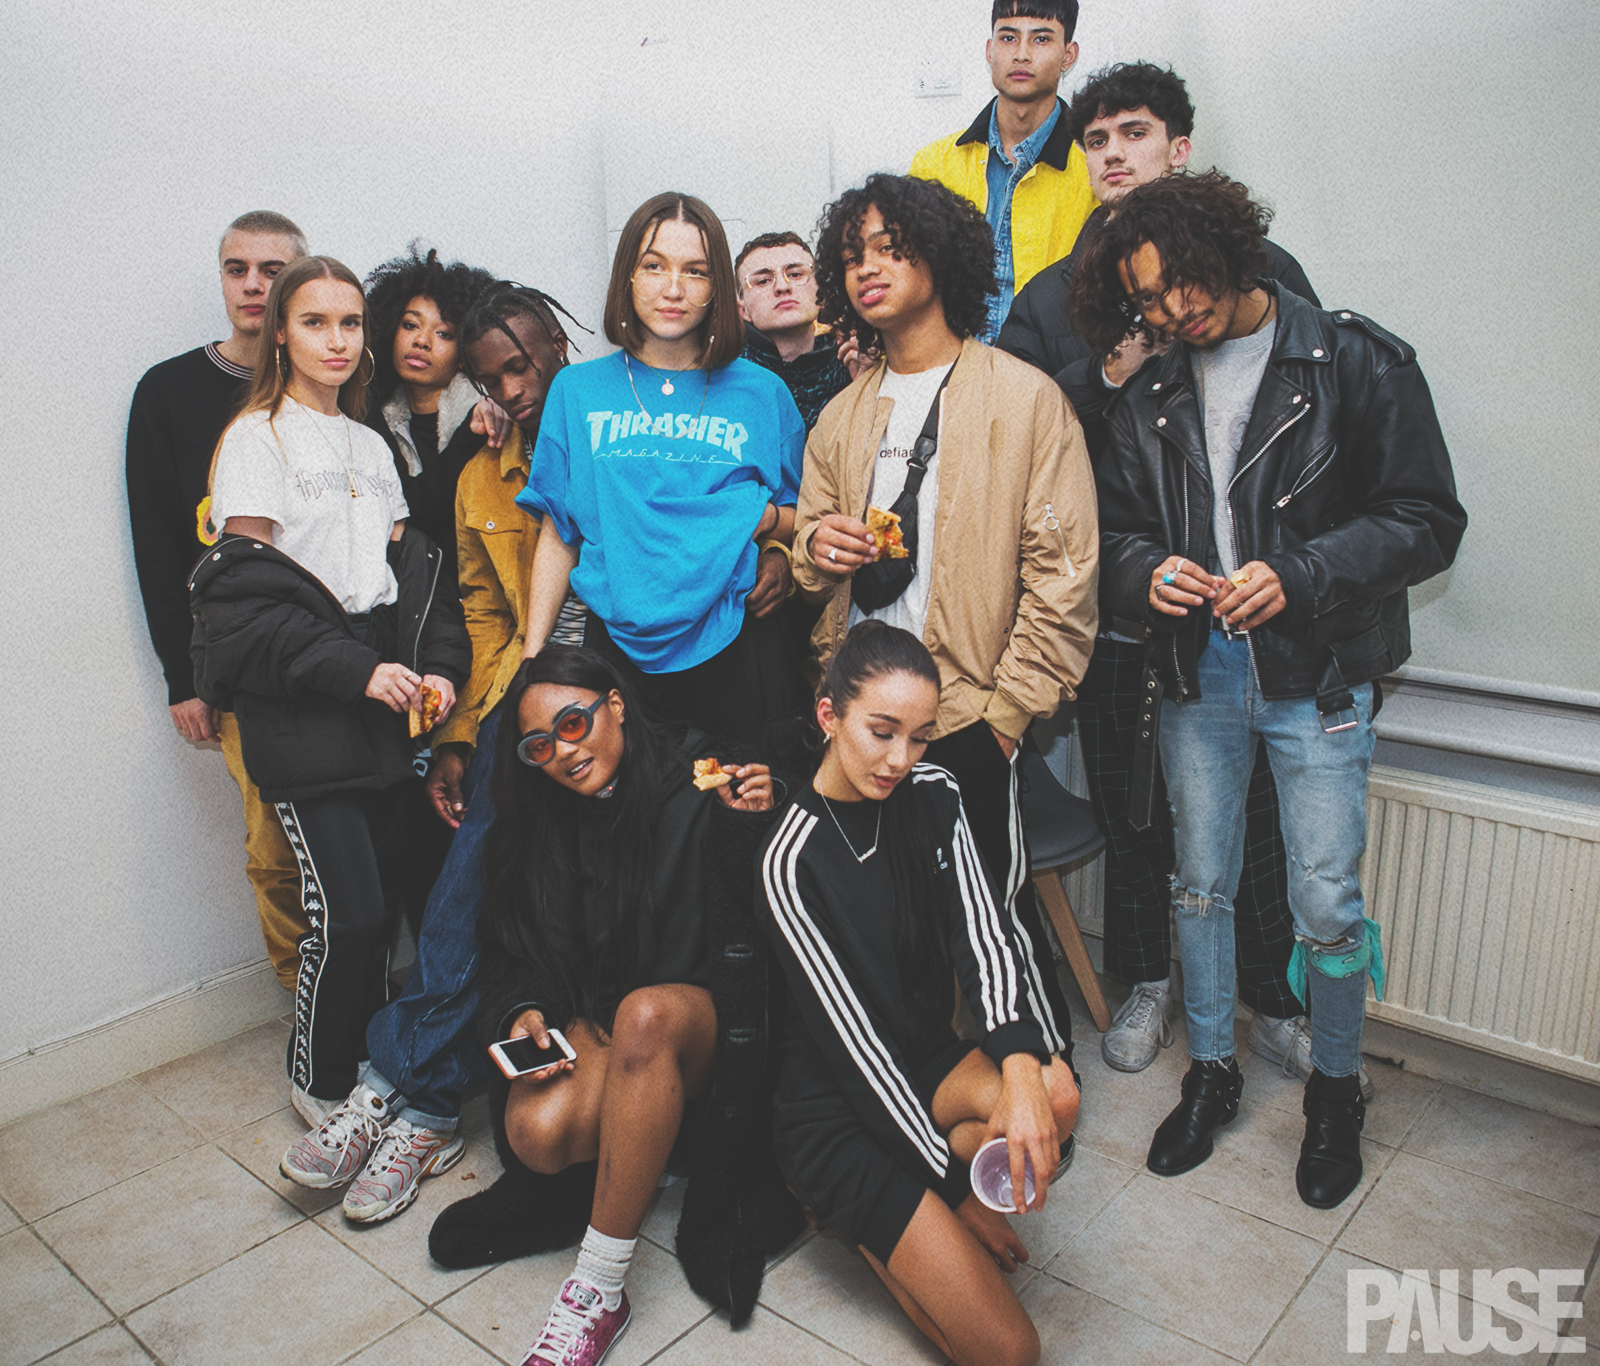 PAUSE Editorial: The House Party